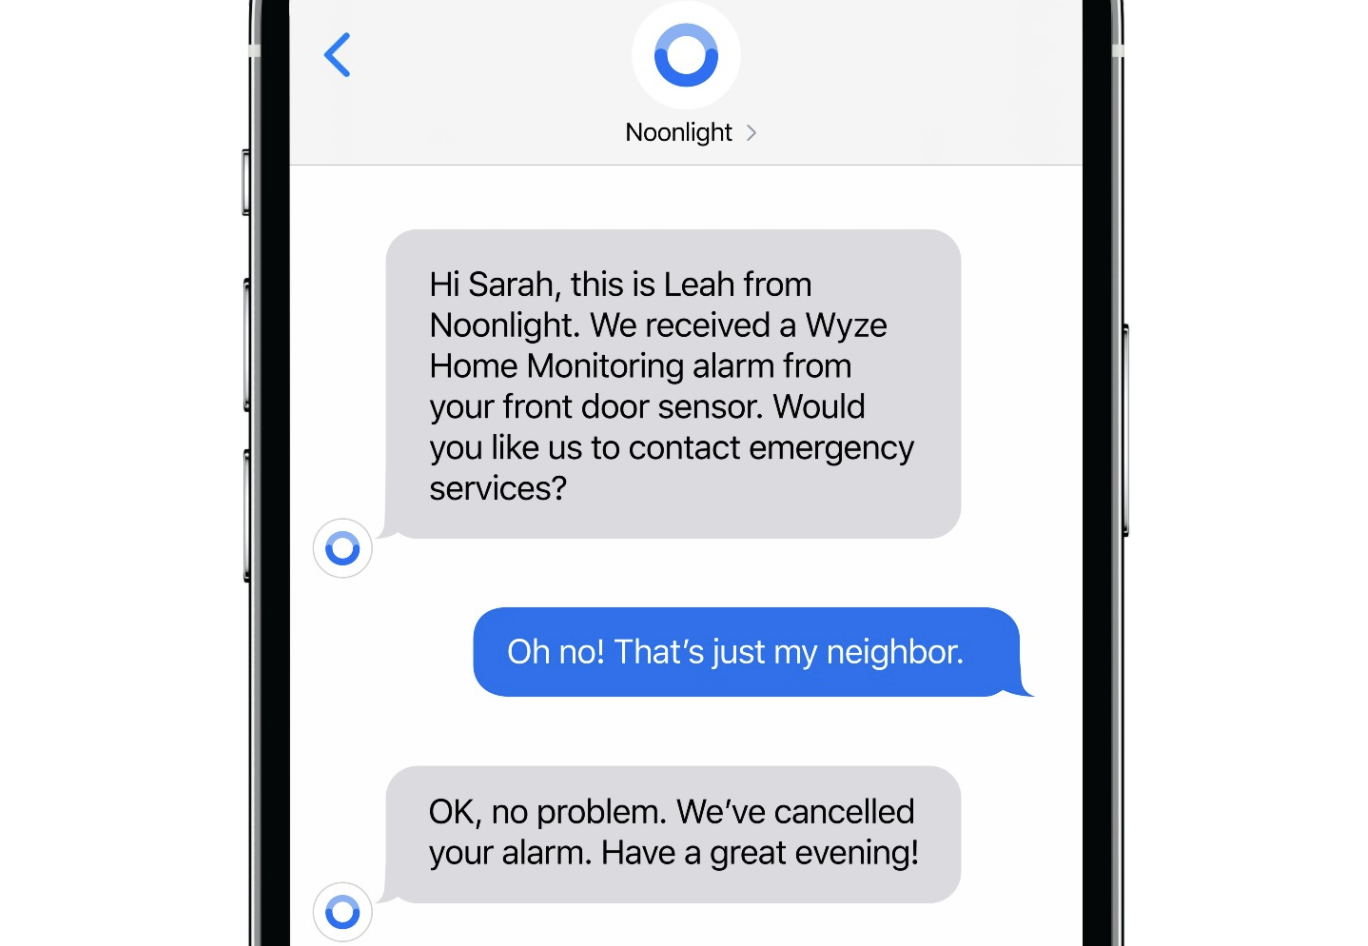 Wyze teams with Noonlight to offer smart home users 24/7 monitoring